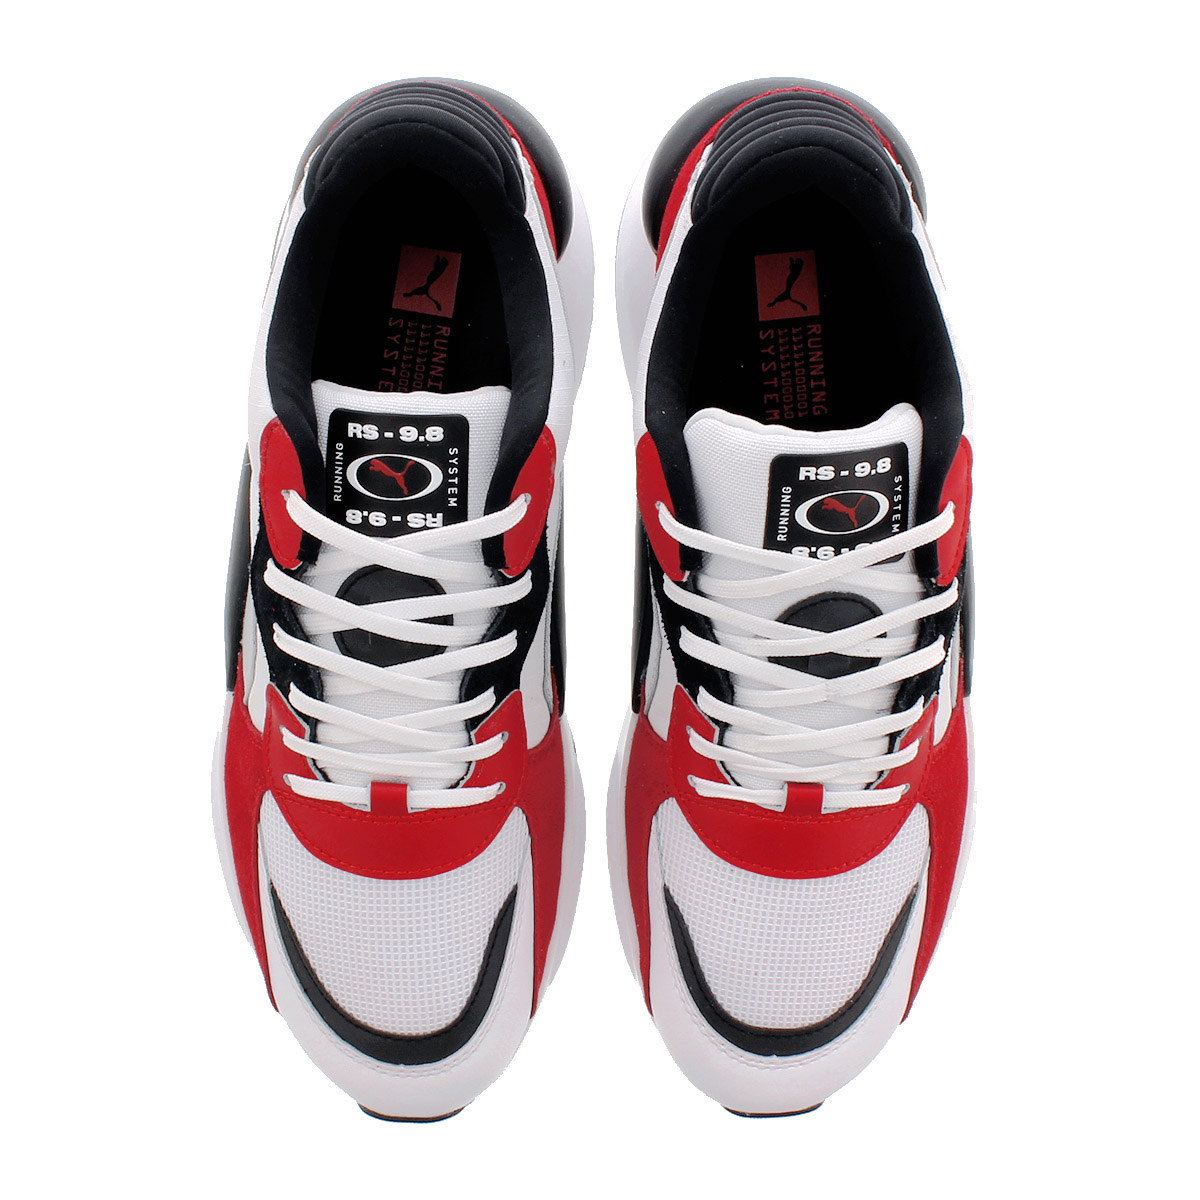 PUMA RS 9.8 Space Sneakers White High Risk Red (370230 01)